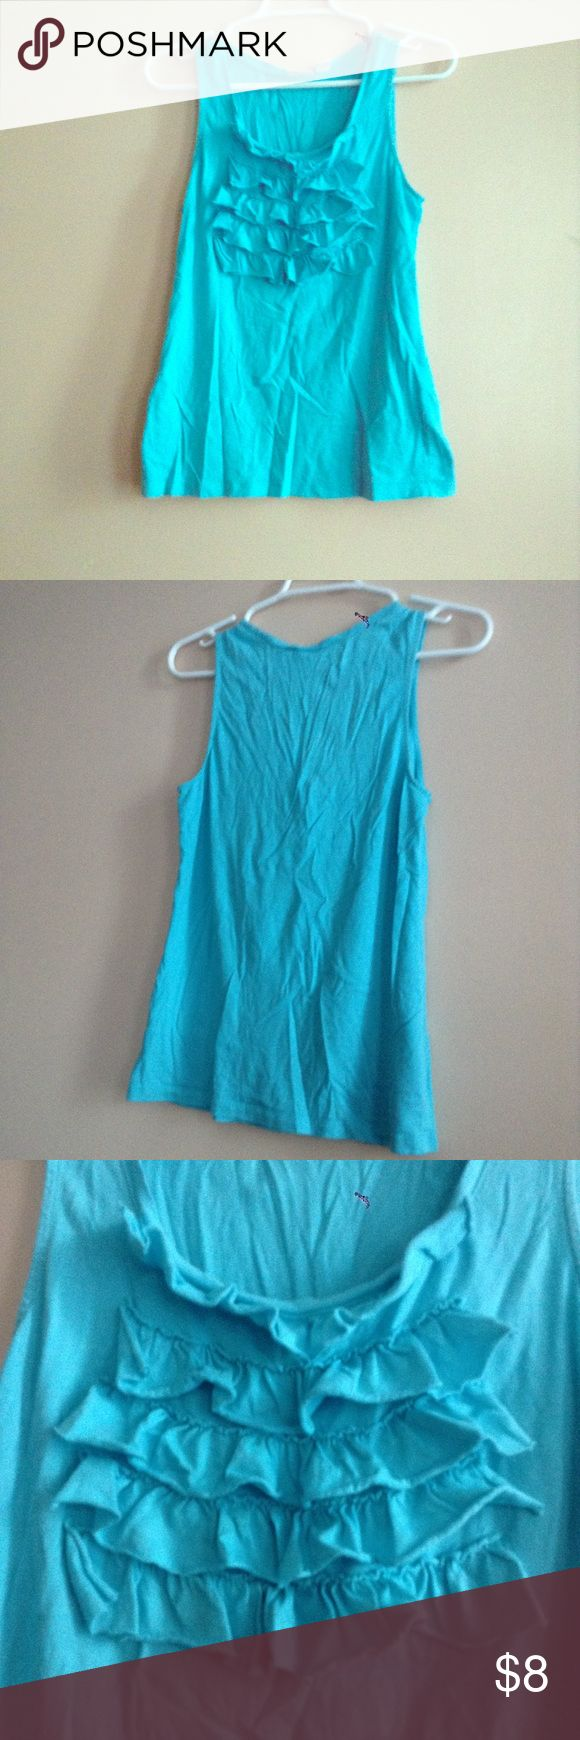 Cato Ruffled Blue Tank Top This is a cute little tank! Barely been worn. Super comfy! Looks cute with a pair of jeans and a jean jacket. Cato Tops Tank Tops